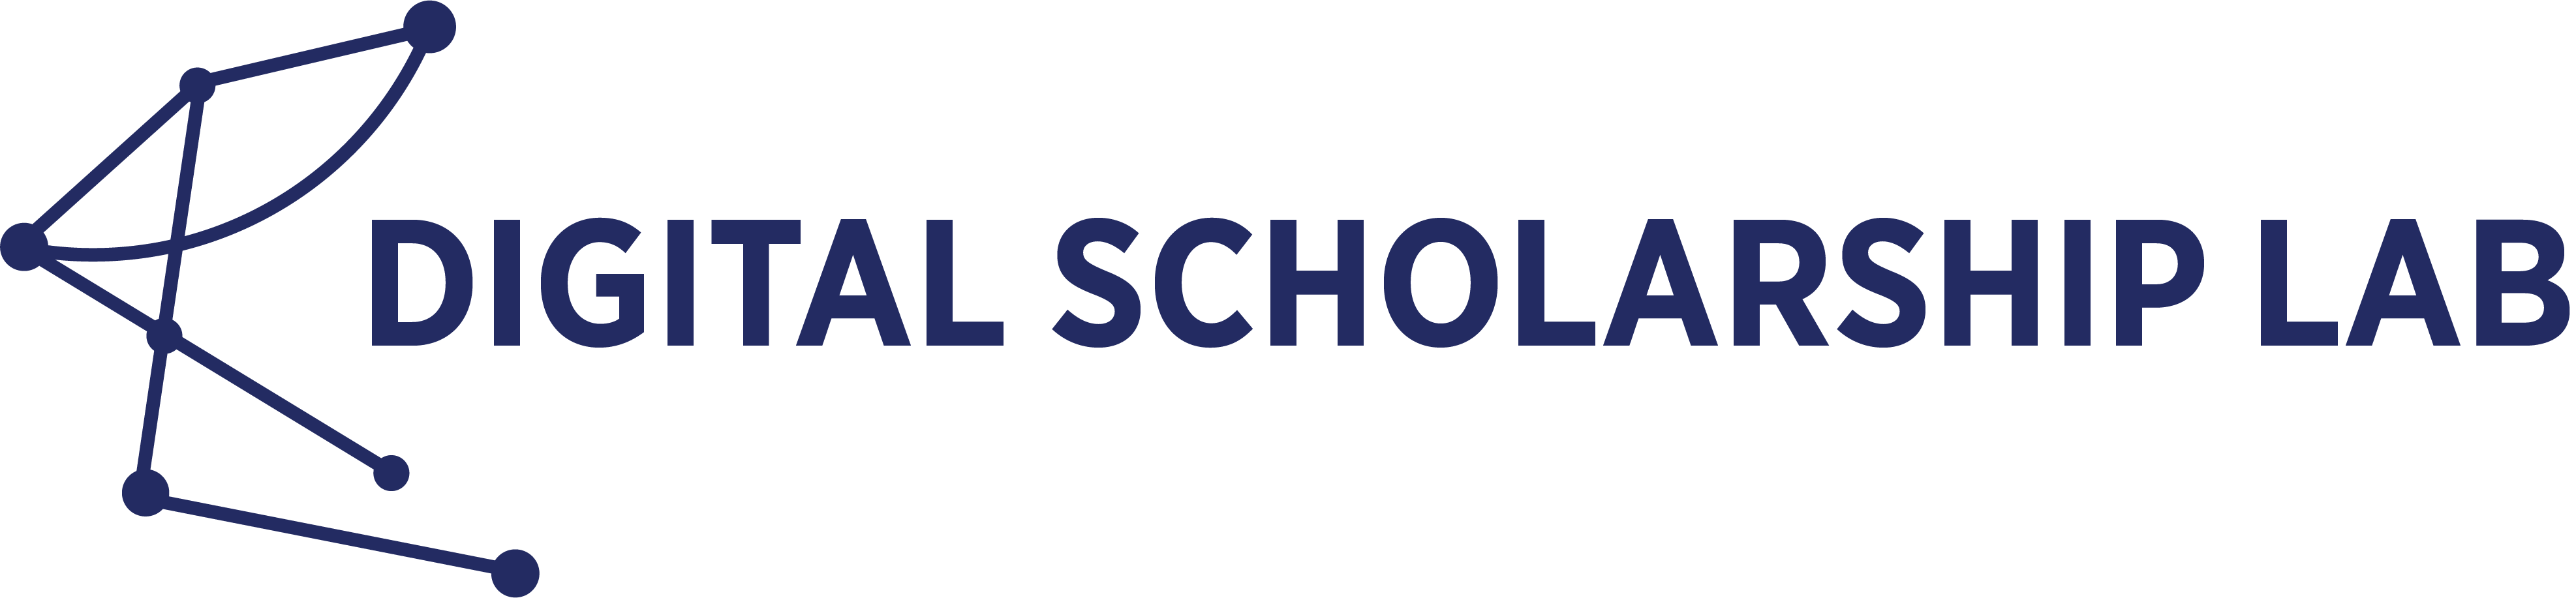 Digital Scholarship Lab Wordmark